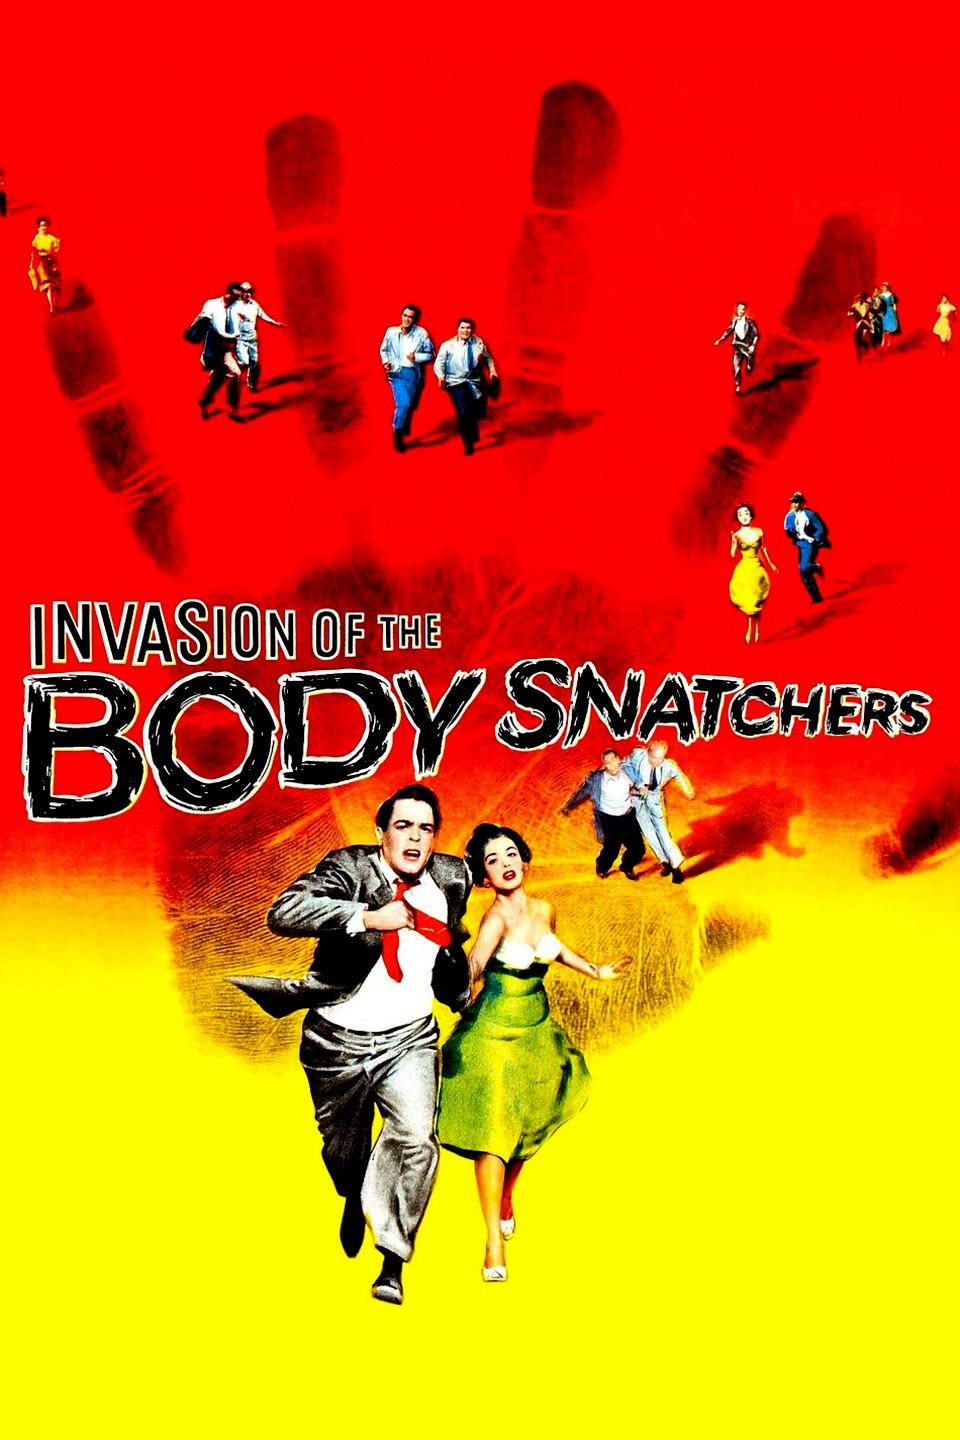 Invasion of the Body Snatchers - Top 25 Horror Movies of All Time